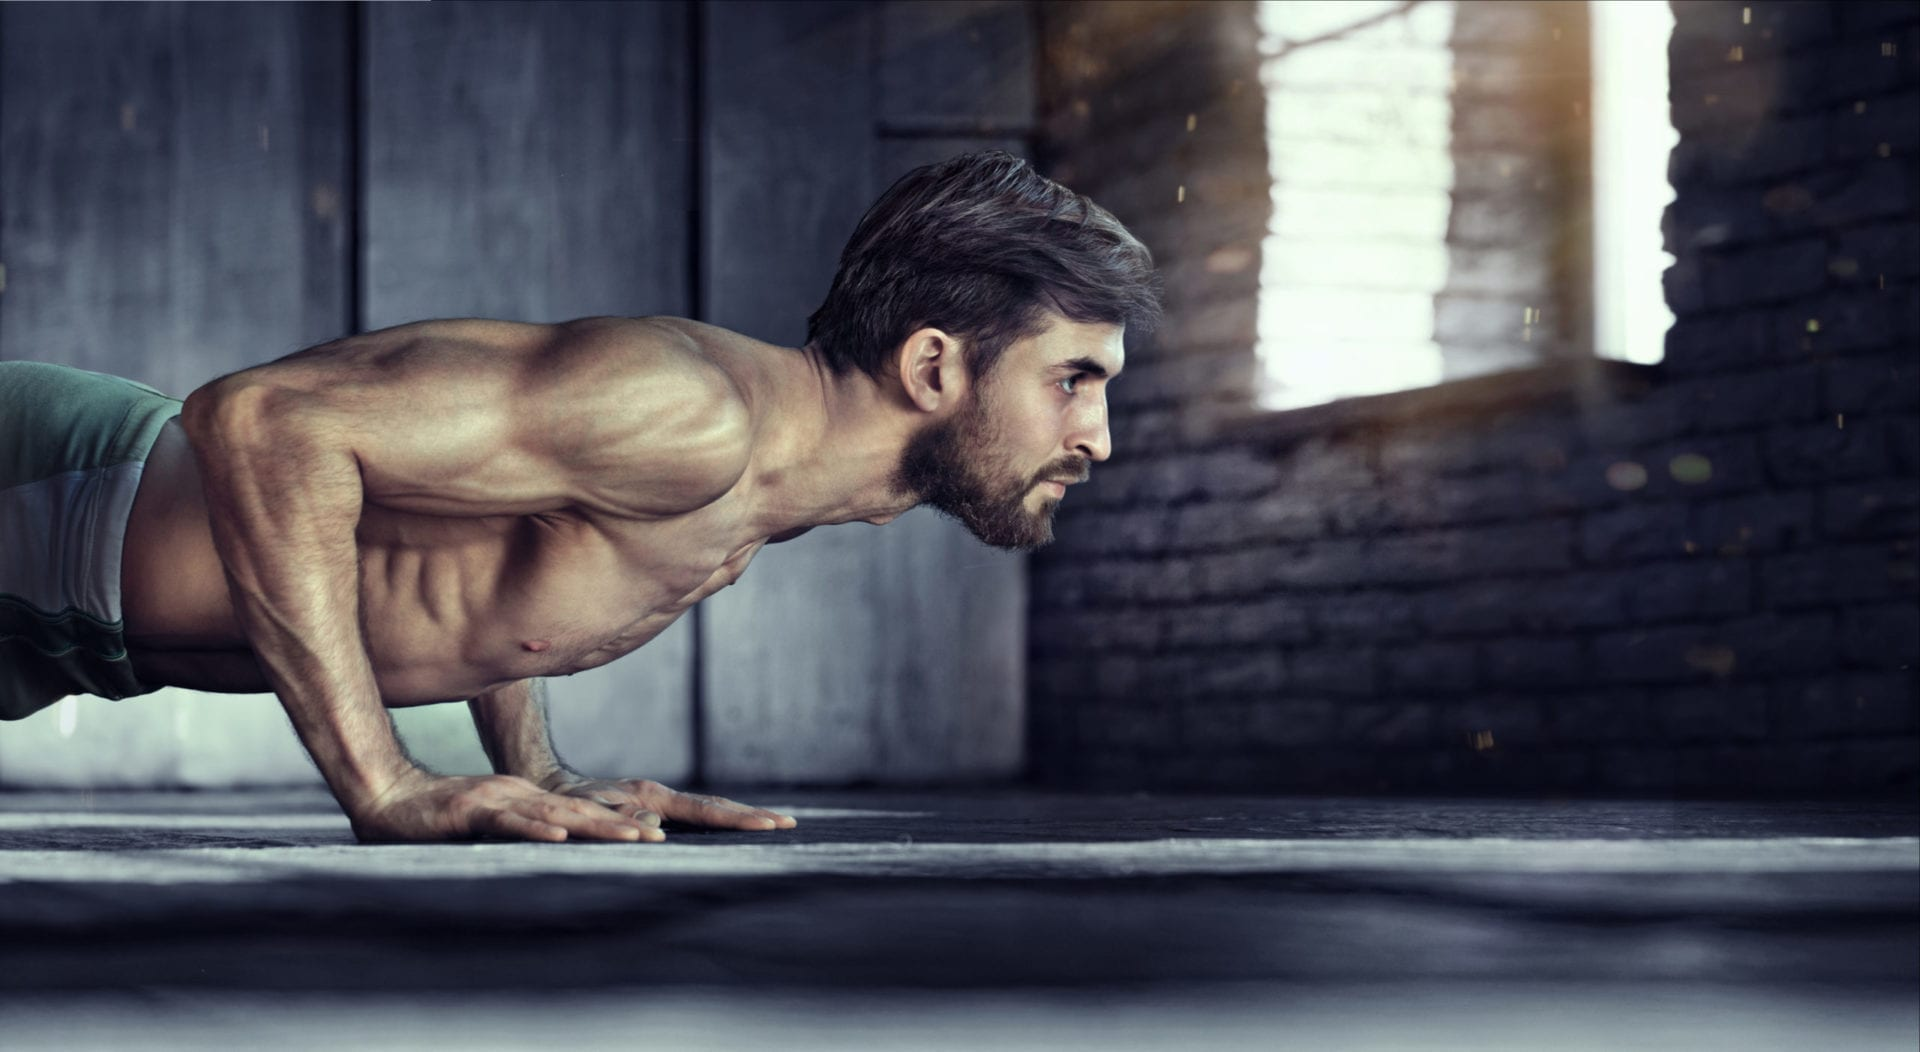 Man exercising fasted